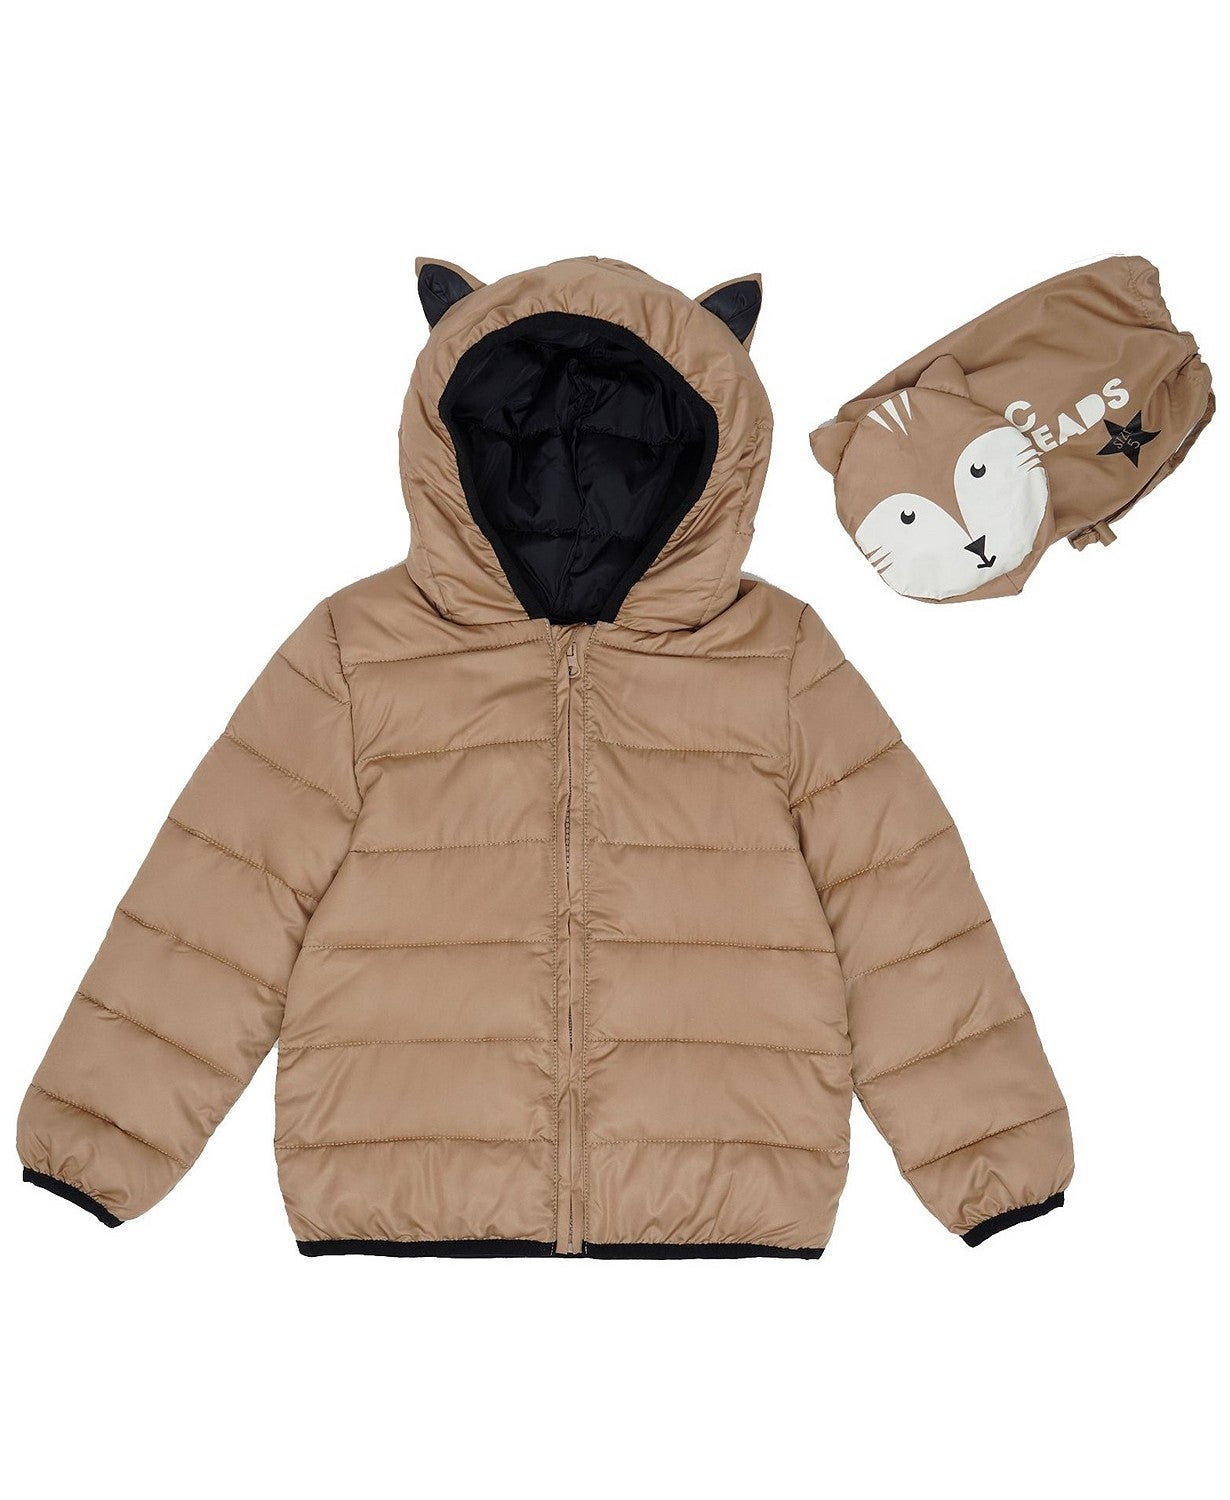 Epic Threads Little Boys Fox Hooded Full Zip Packable Jacket with Matching Bag